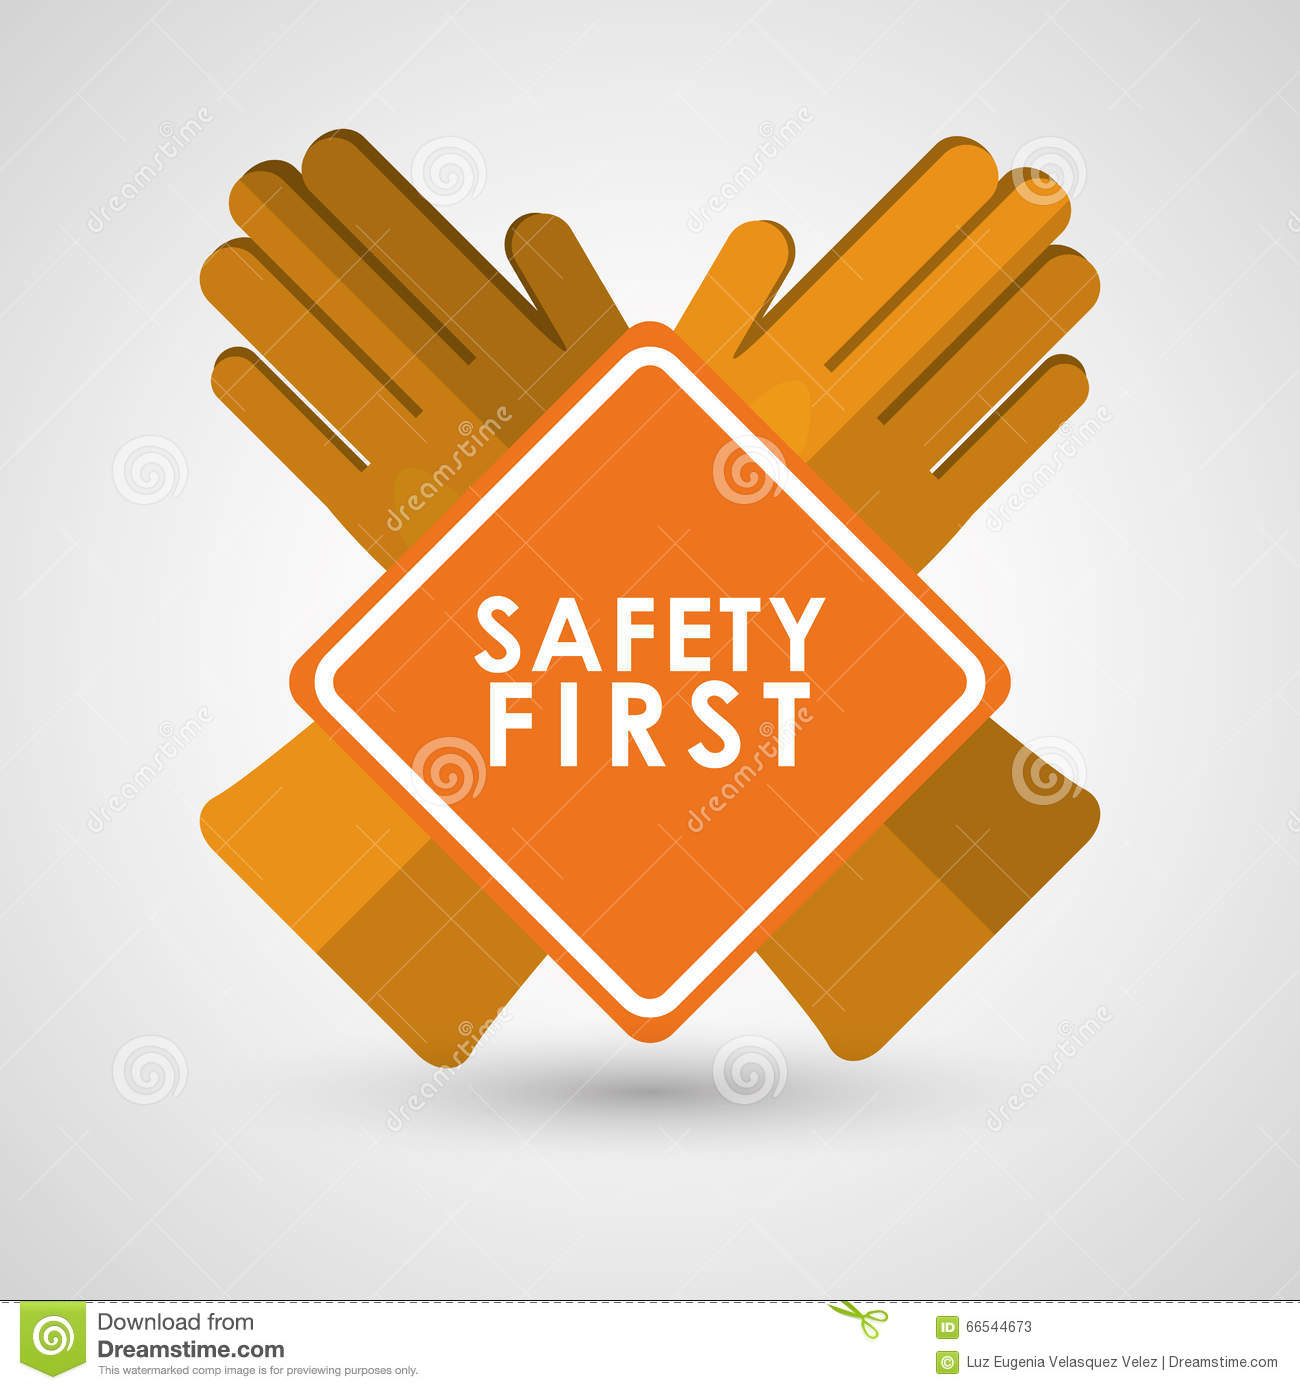 safety at work icon design stock vector  illustration of